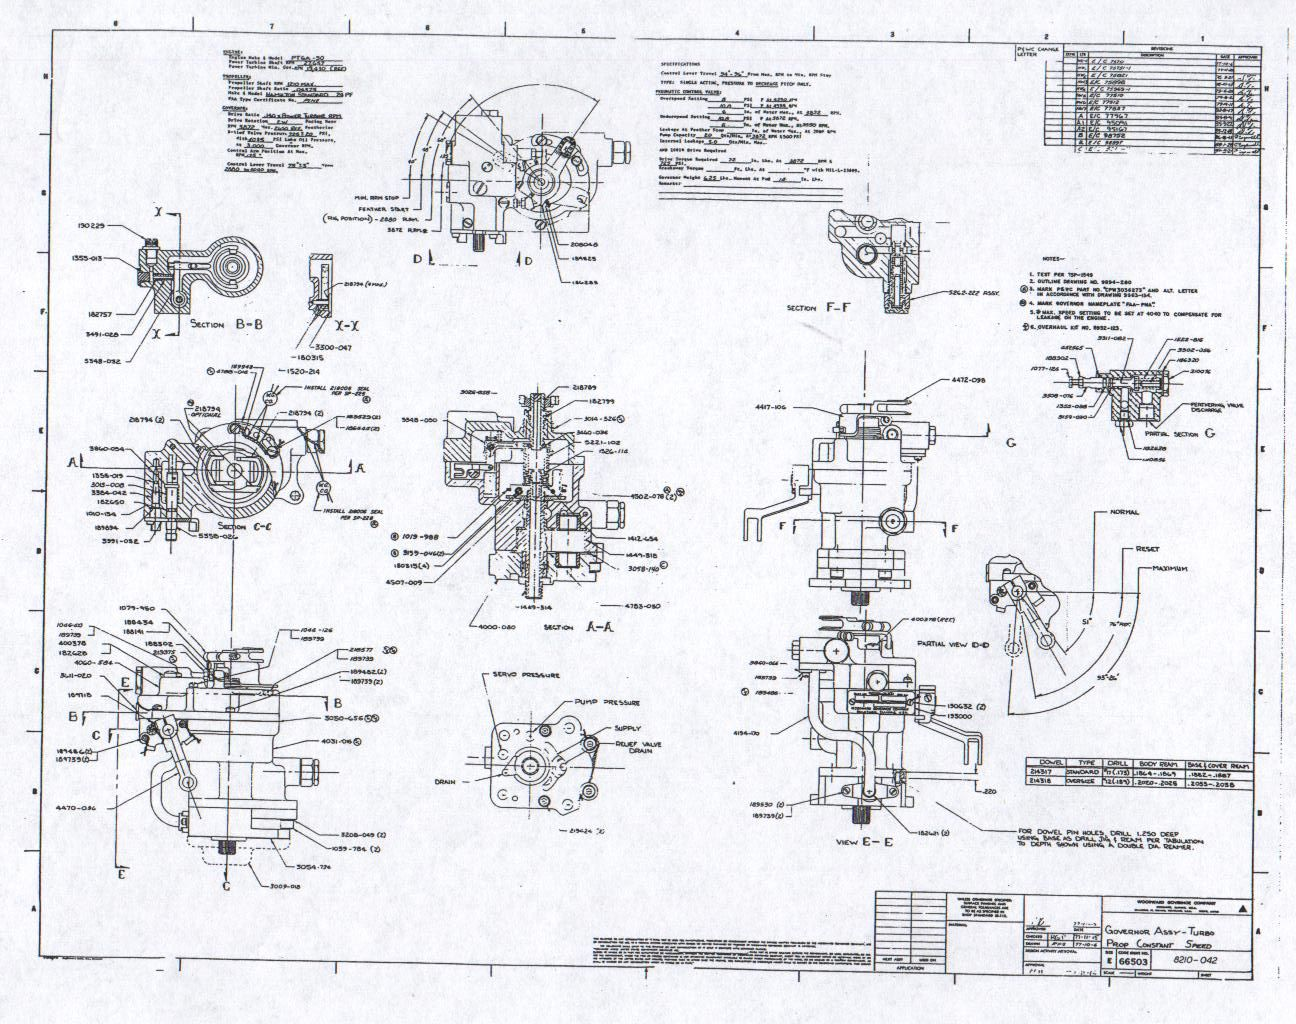 woodward aircraft propeller governor schematic drawing woodward governor aircraft propeller operations management [ 1296 x 1024 Pixel ]